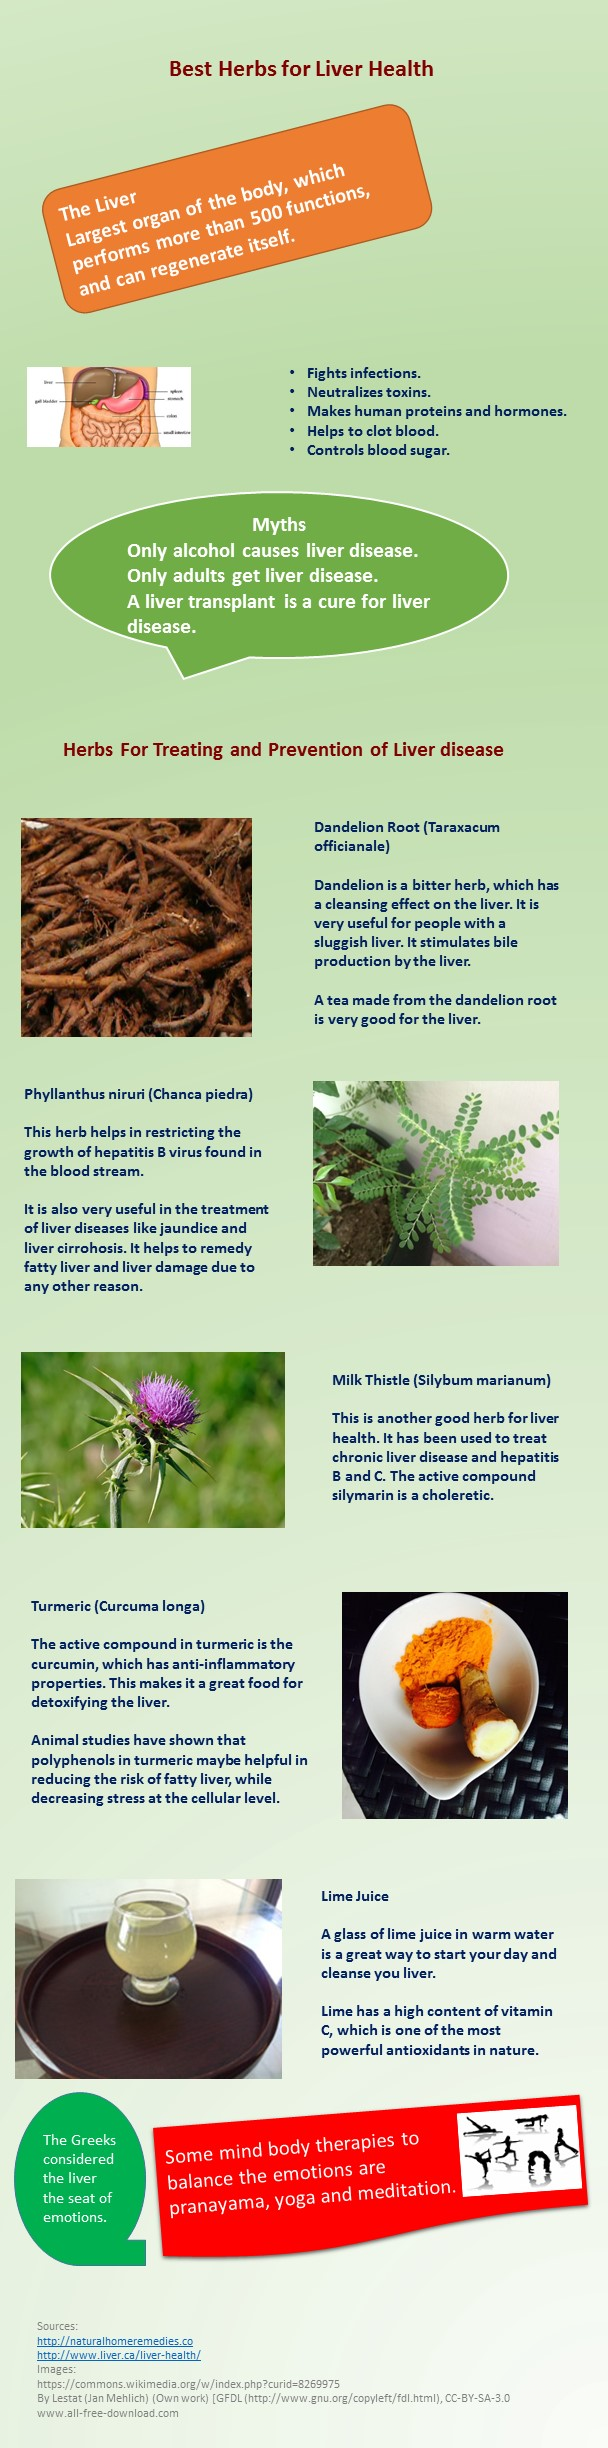 Best herbs for liver health